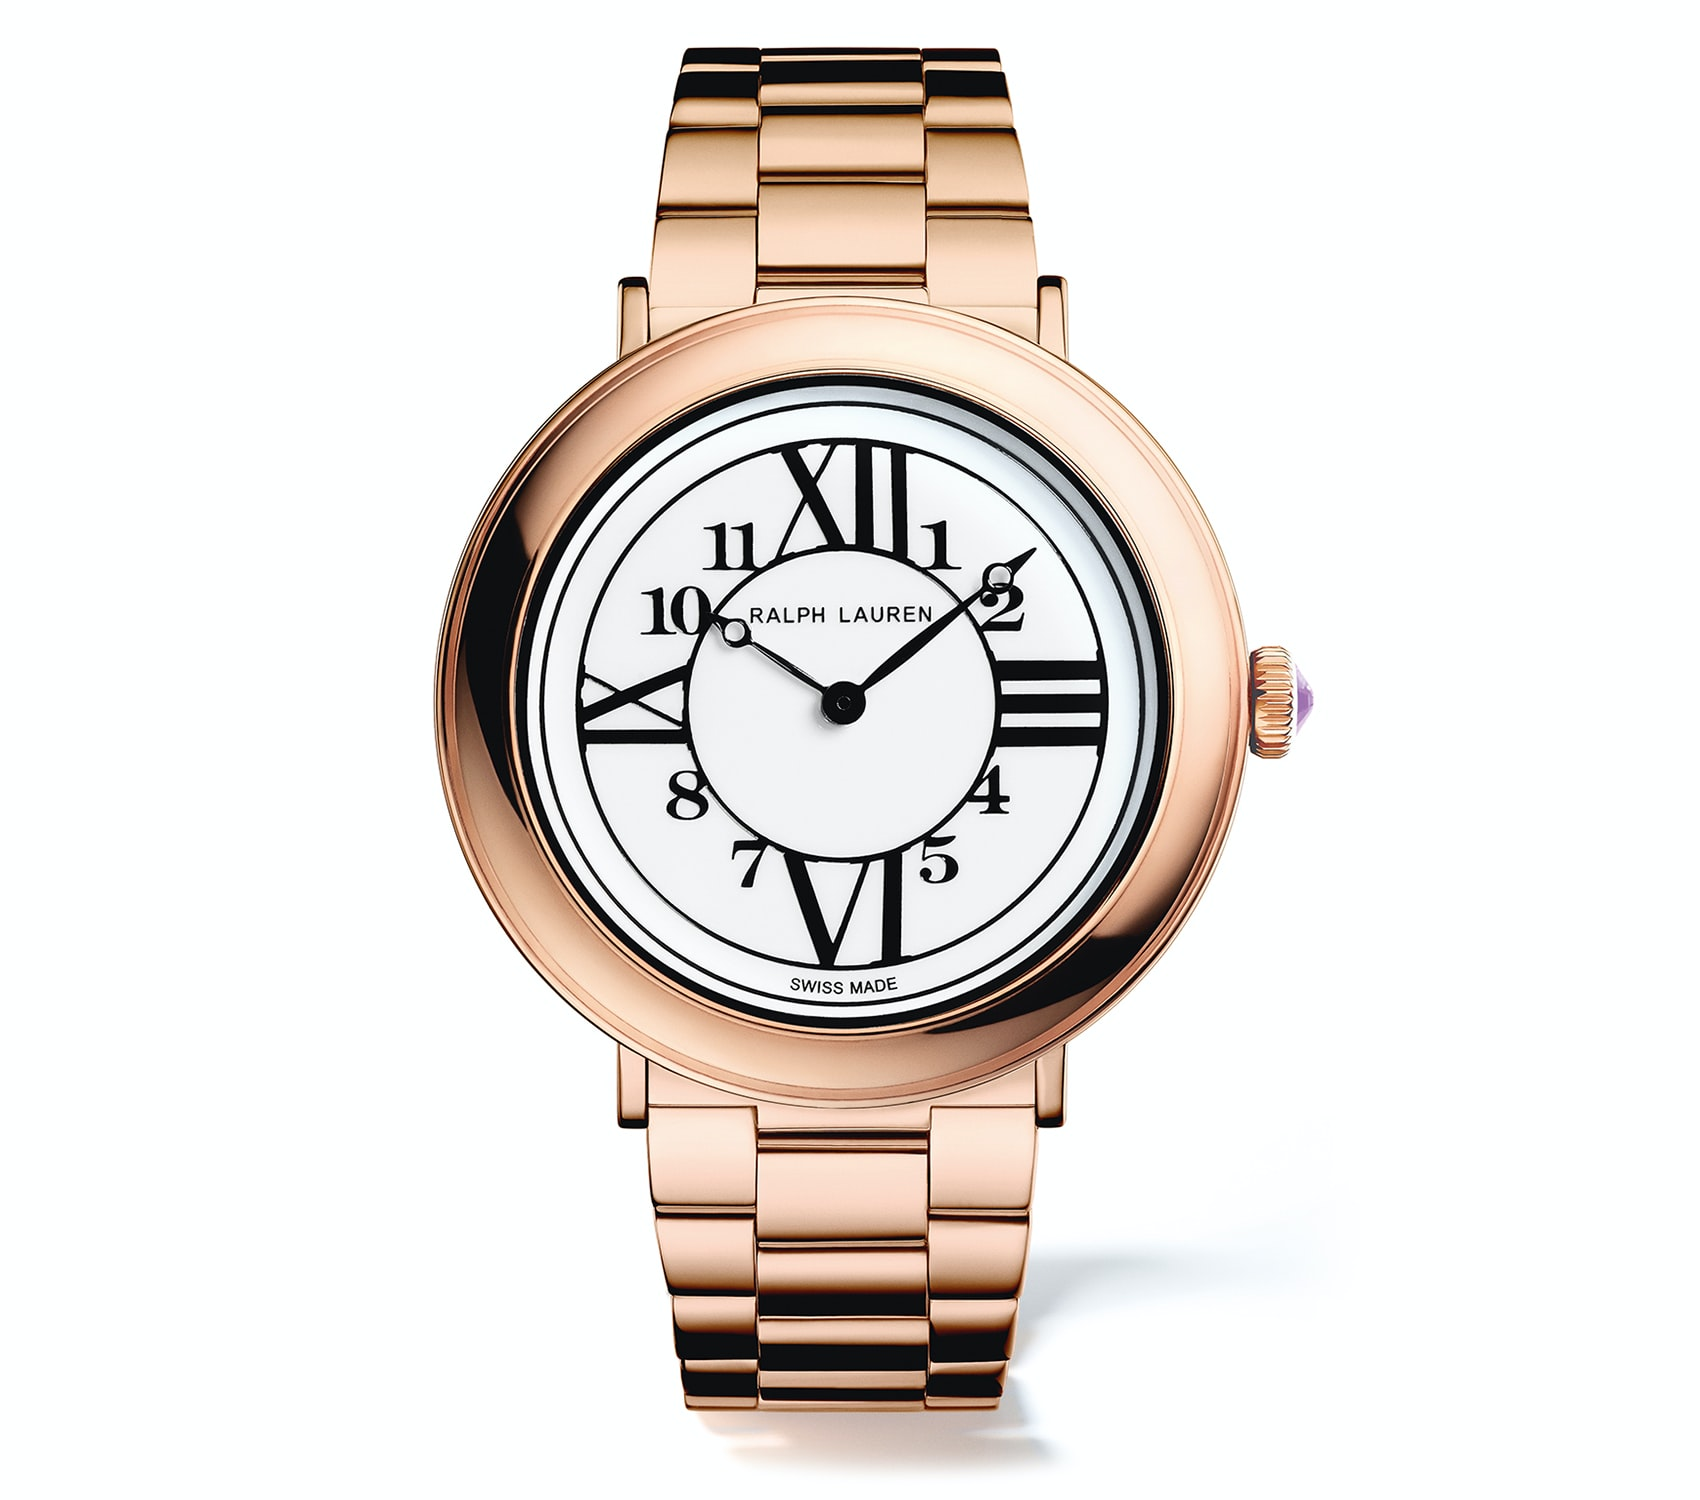 Introducing: The Ralph Lauren 888 Ladies' Collection Introducing: The Ralph Lauren 888 Ladies' Collection 76